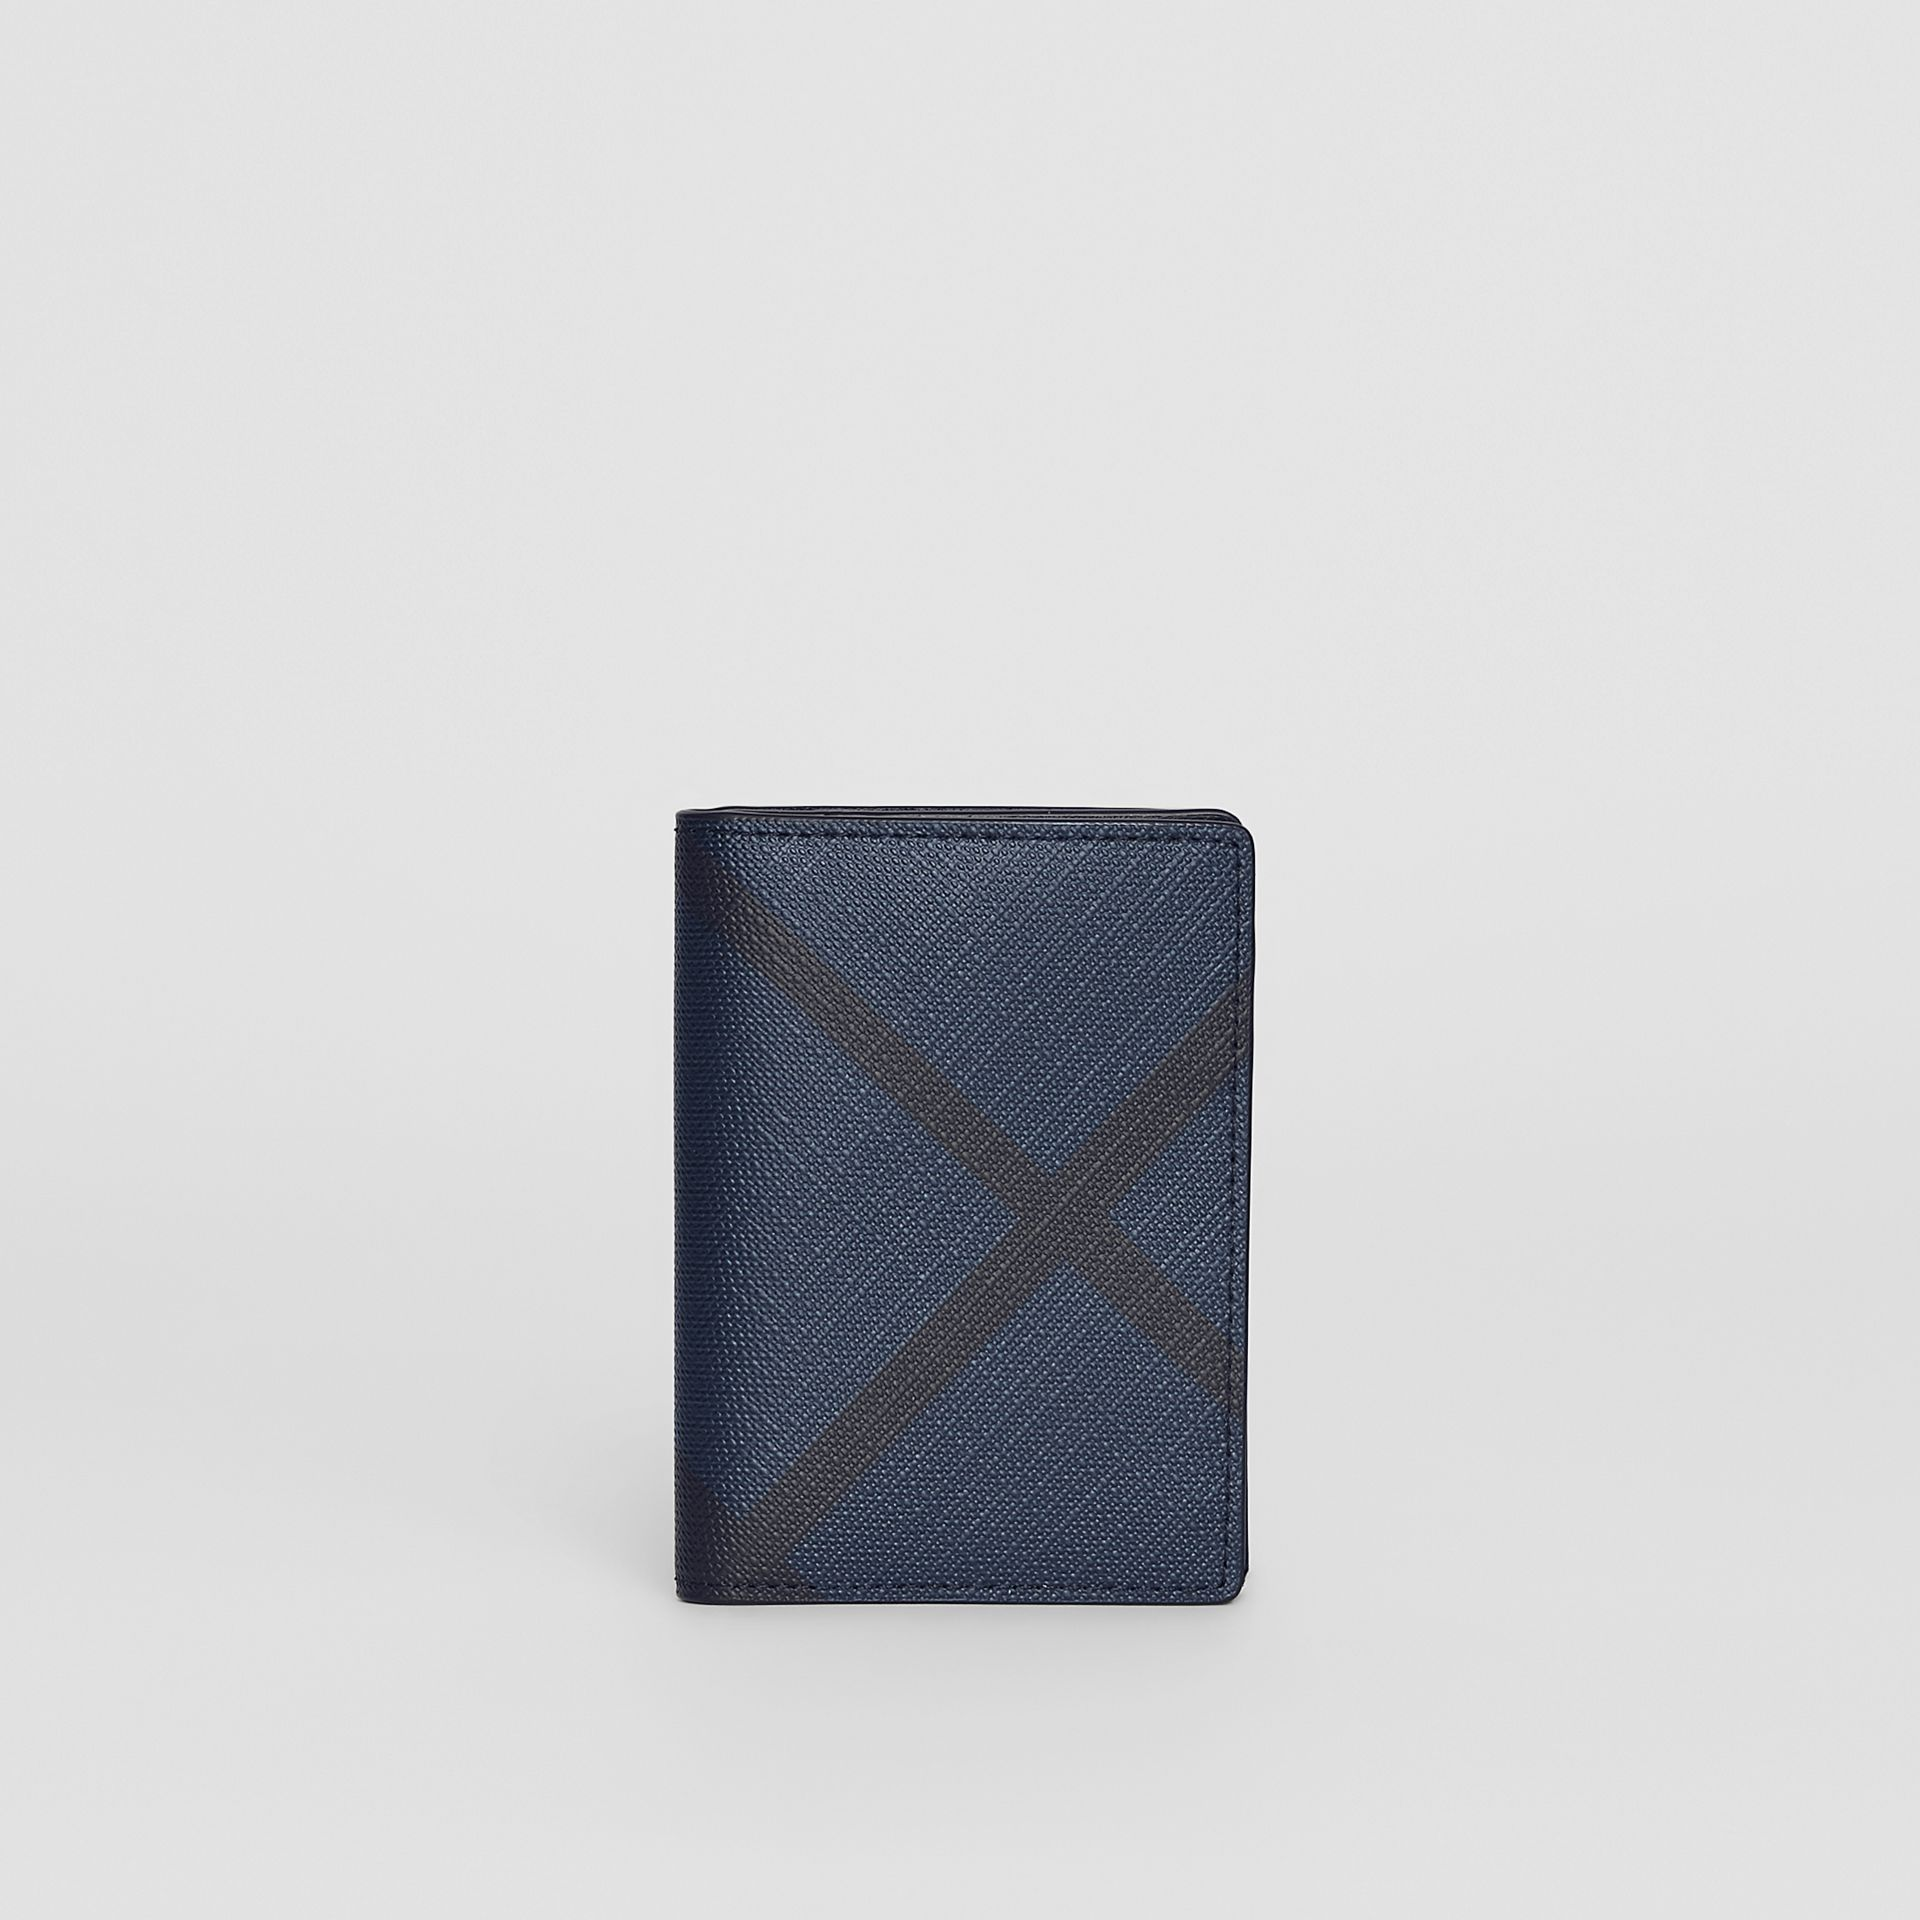 London Check and Leather Folding Card Case in Navy/black - Men | Burberry - gallery image 5